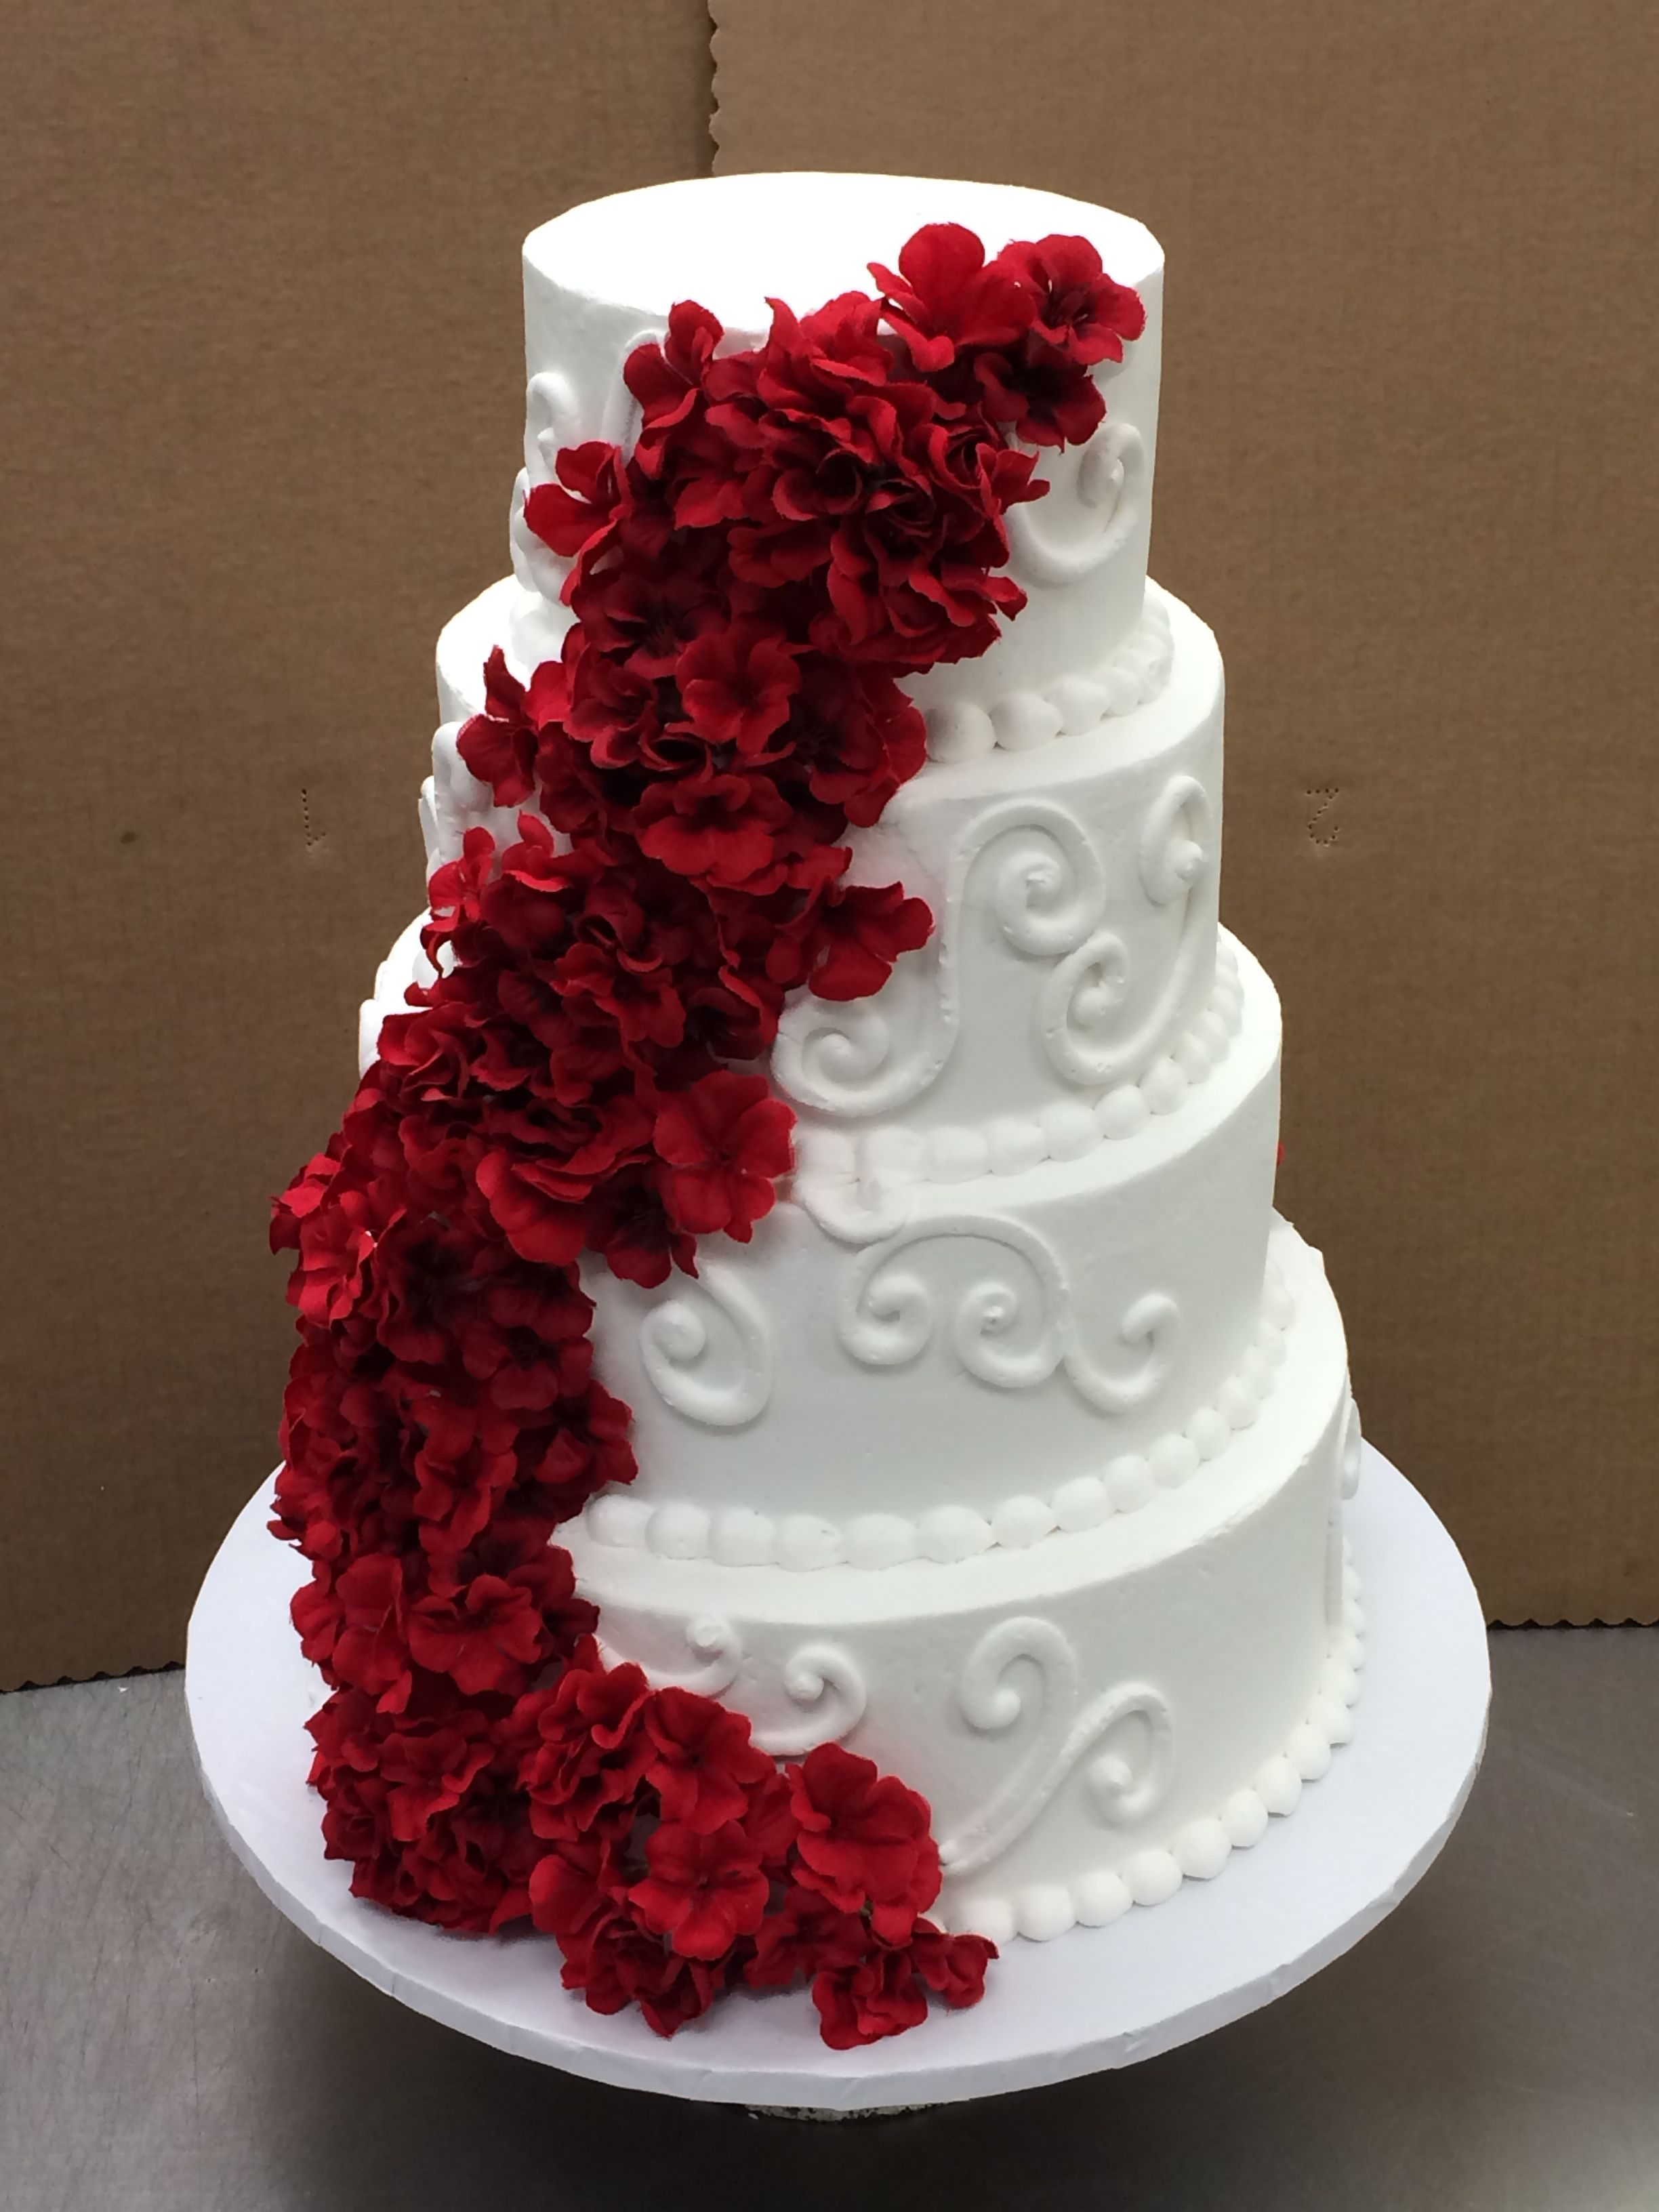 Ombre Coral Wedding Cake by Stephanie Dillon LS1 Hy Vee Bakery